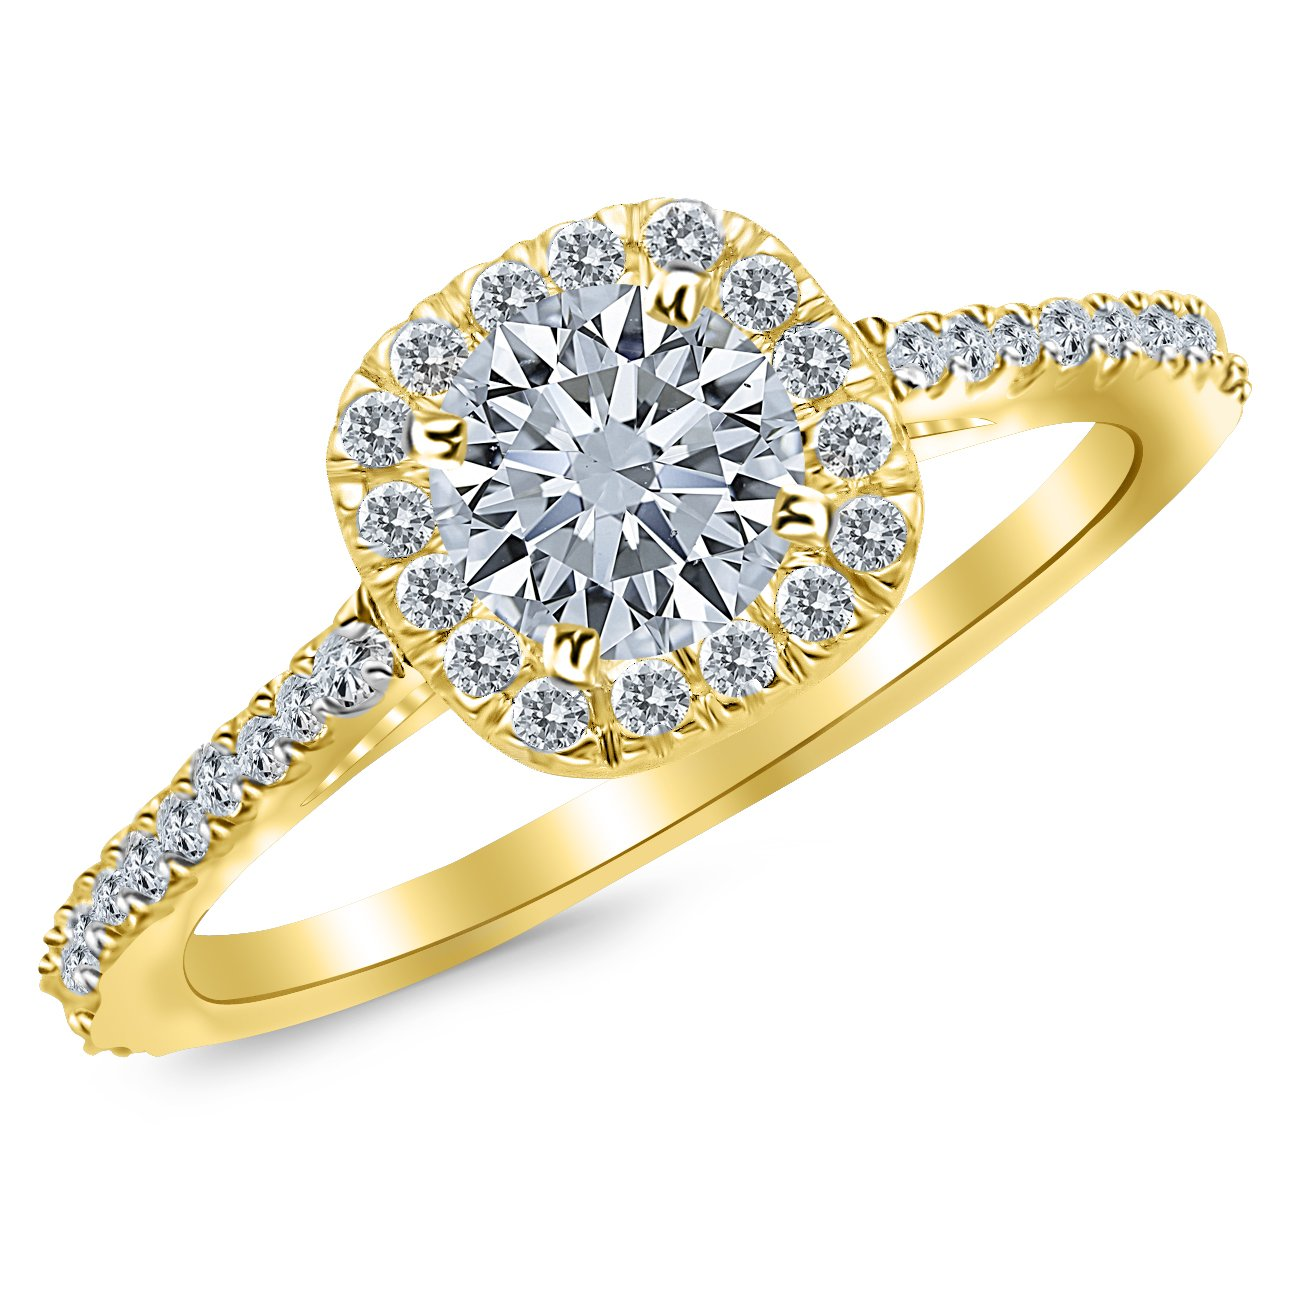 0.8 Carat Gorgeous Classic Cushion Halo Style Diamond Engagement Ring in Yellow Gold with a 0.45 Carat J-K I2 Center